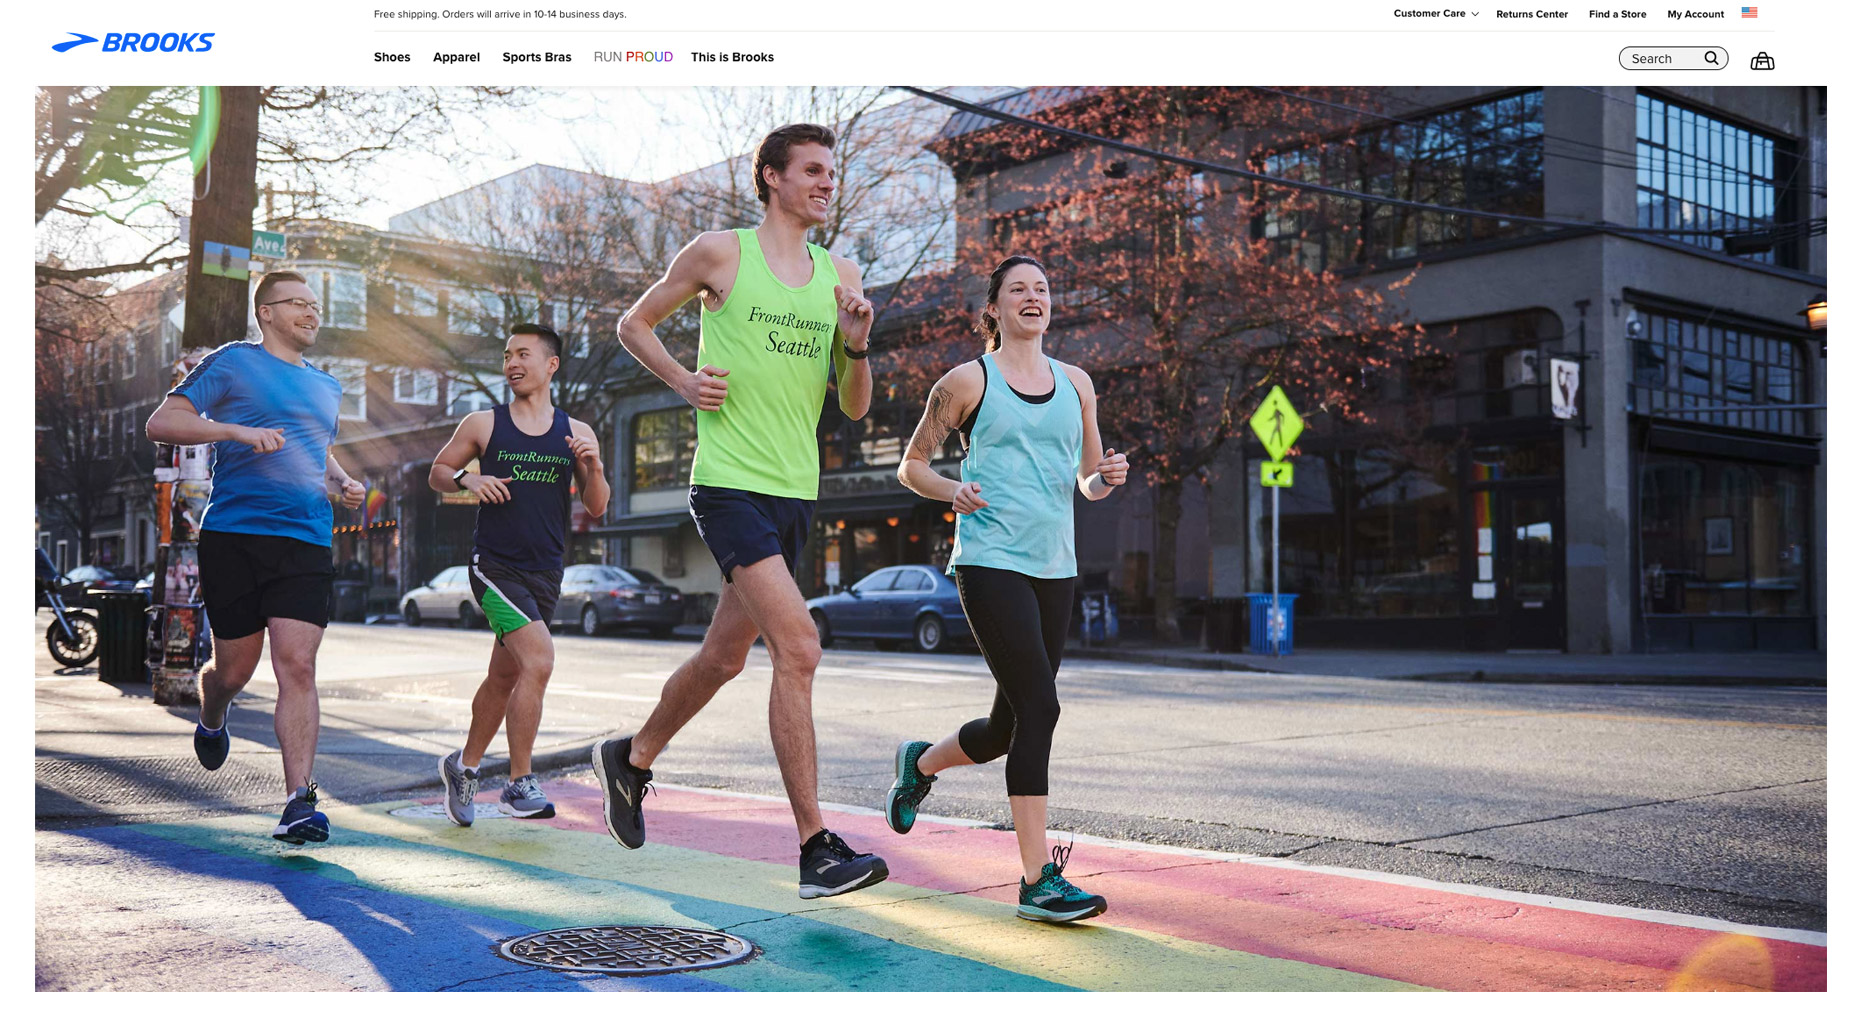 Brooks Frontrunner Homepage photography by Amos Morgan